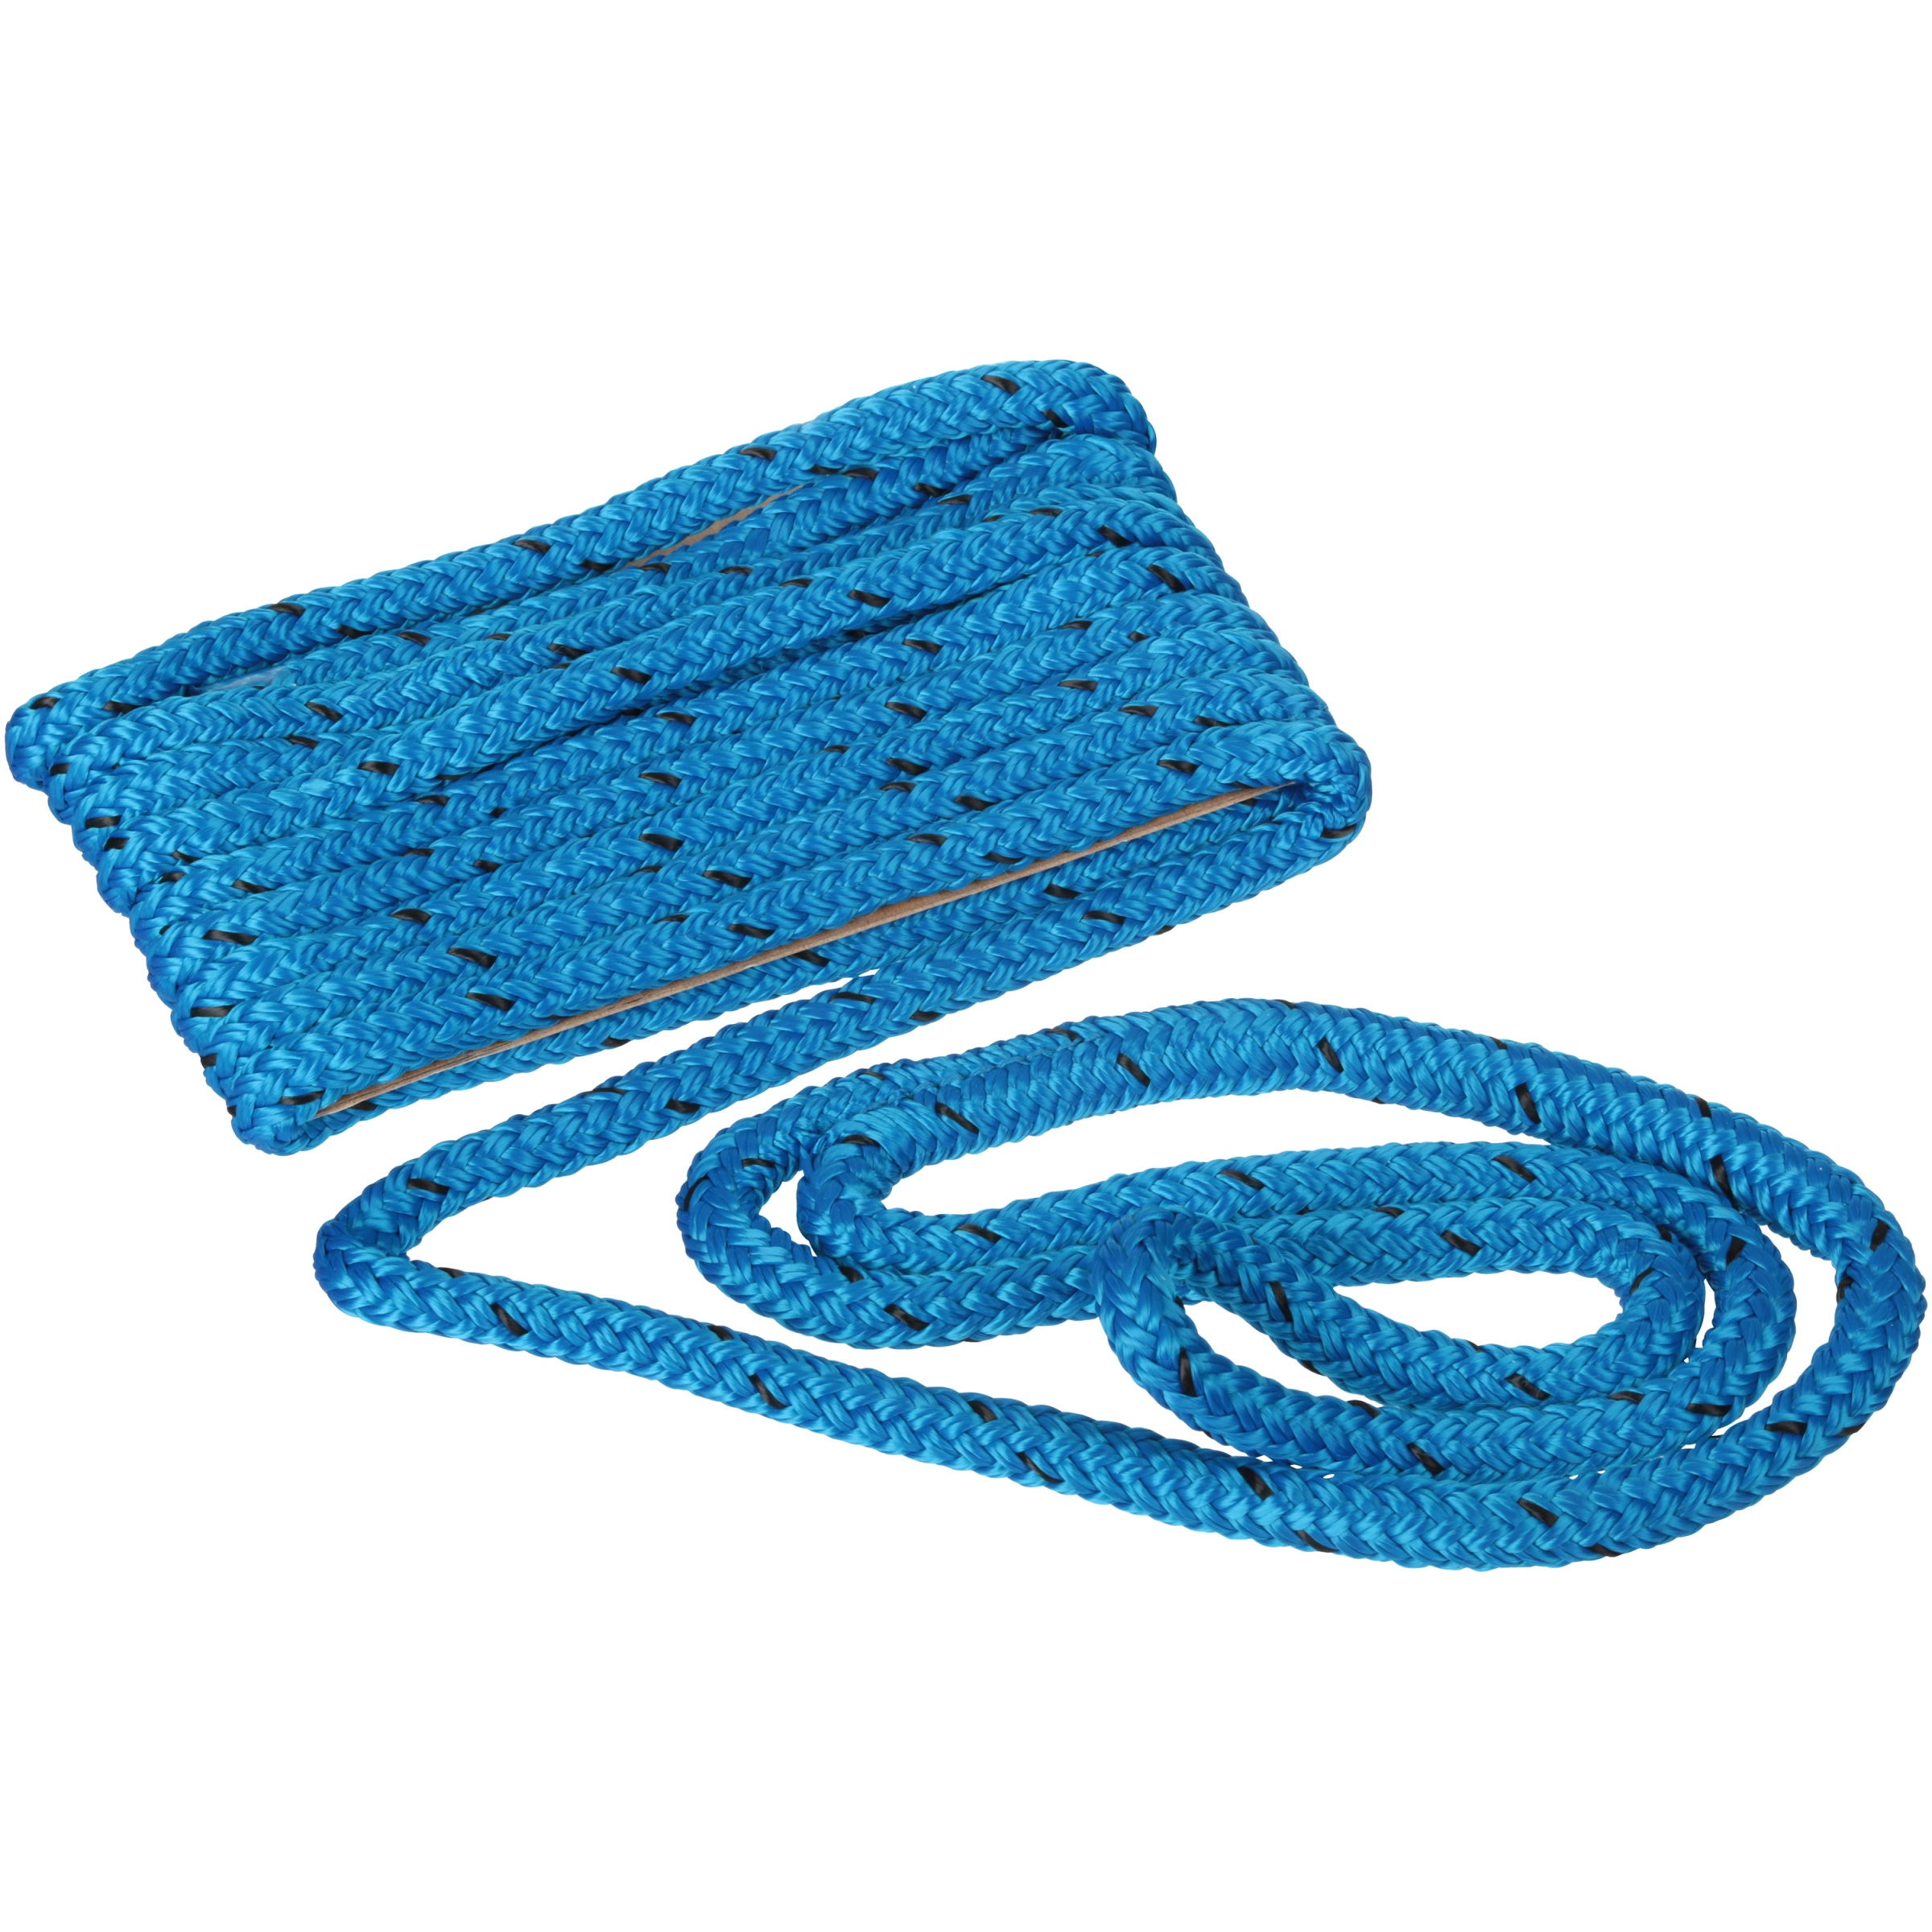 Attwood Double Braided MFP Blue Dock Line 15 ft. Pack